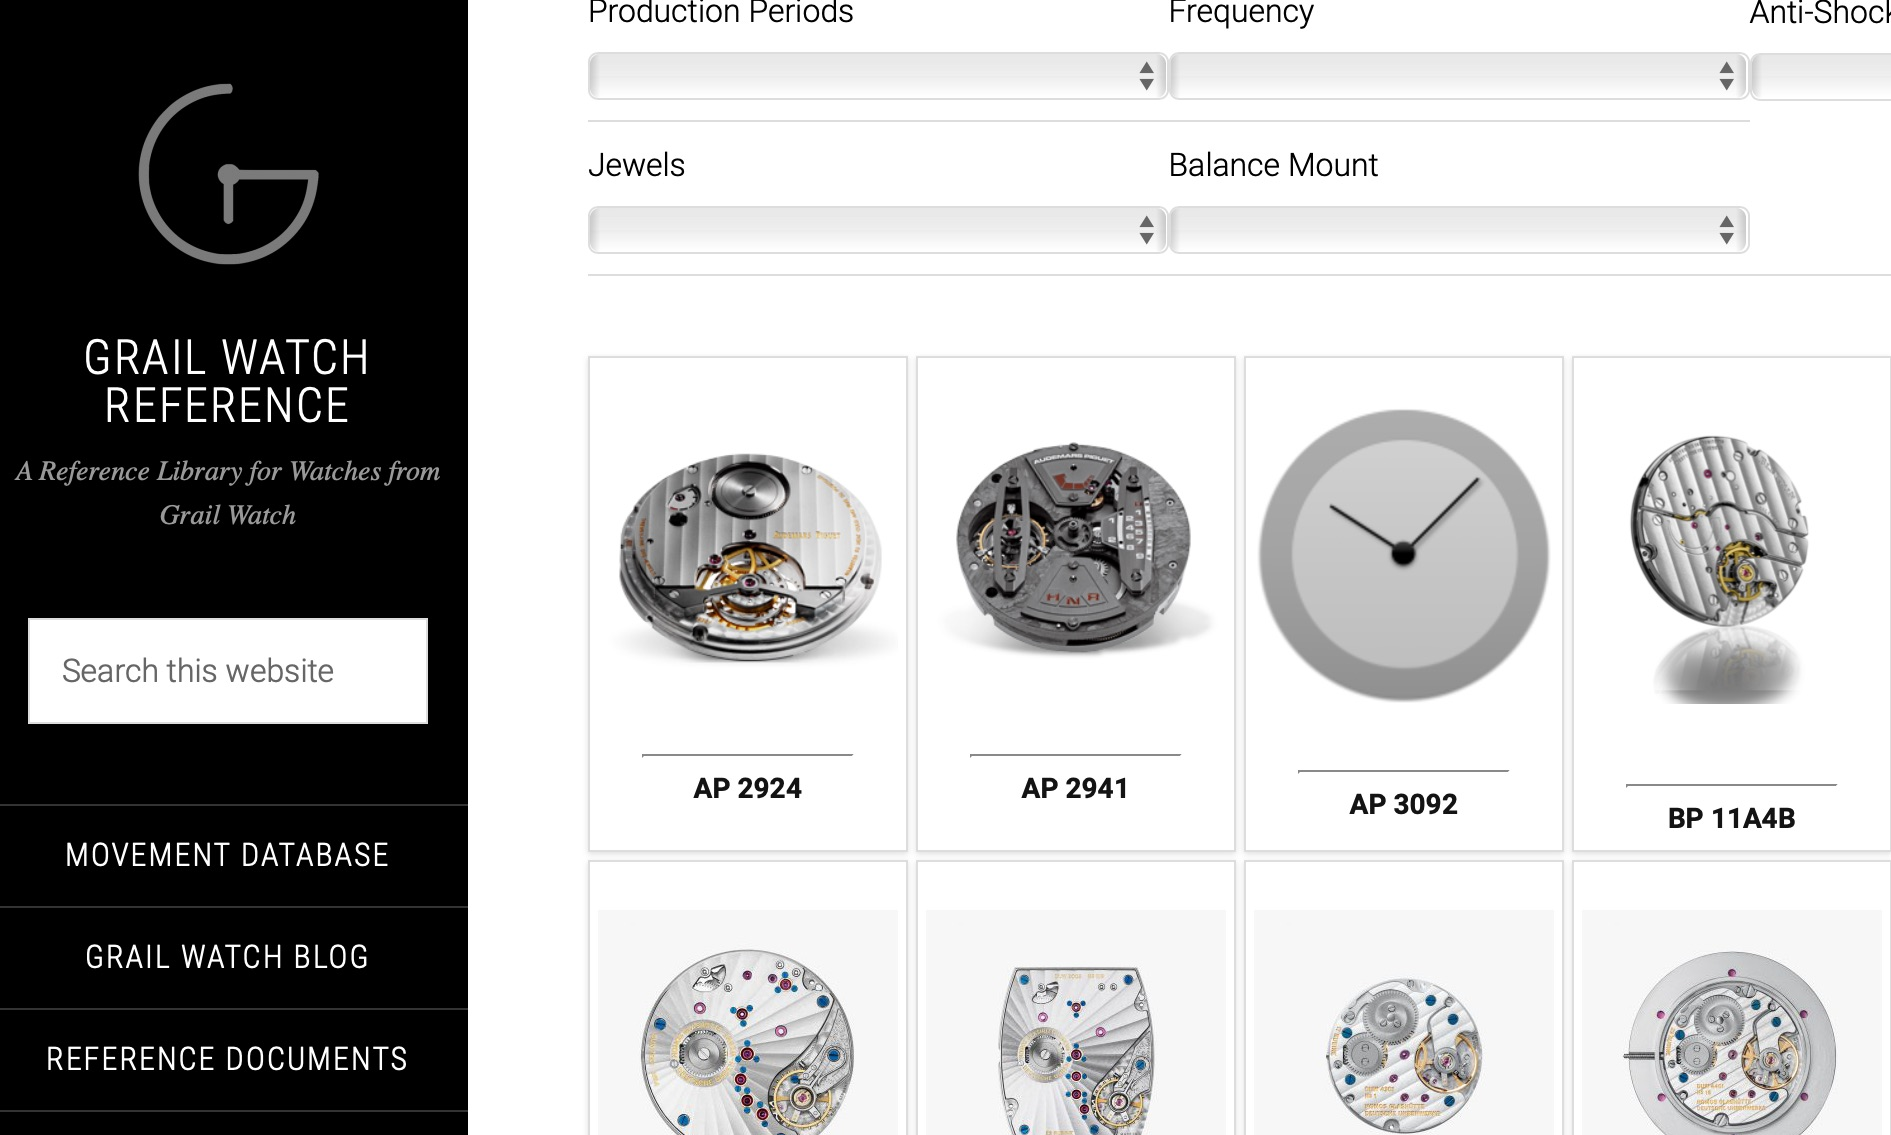 Announcing Grail Watch Reference: A Compendium of Technical Information